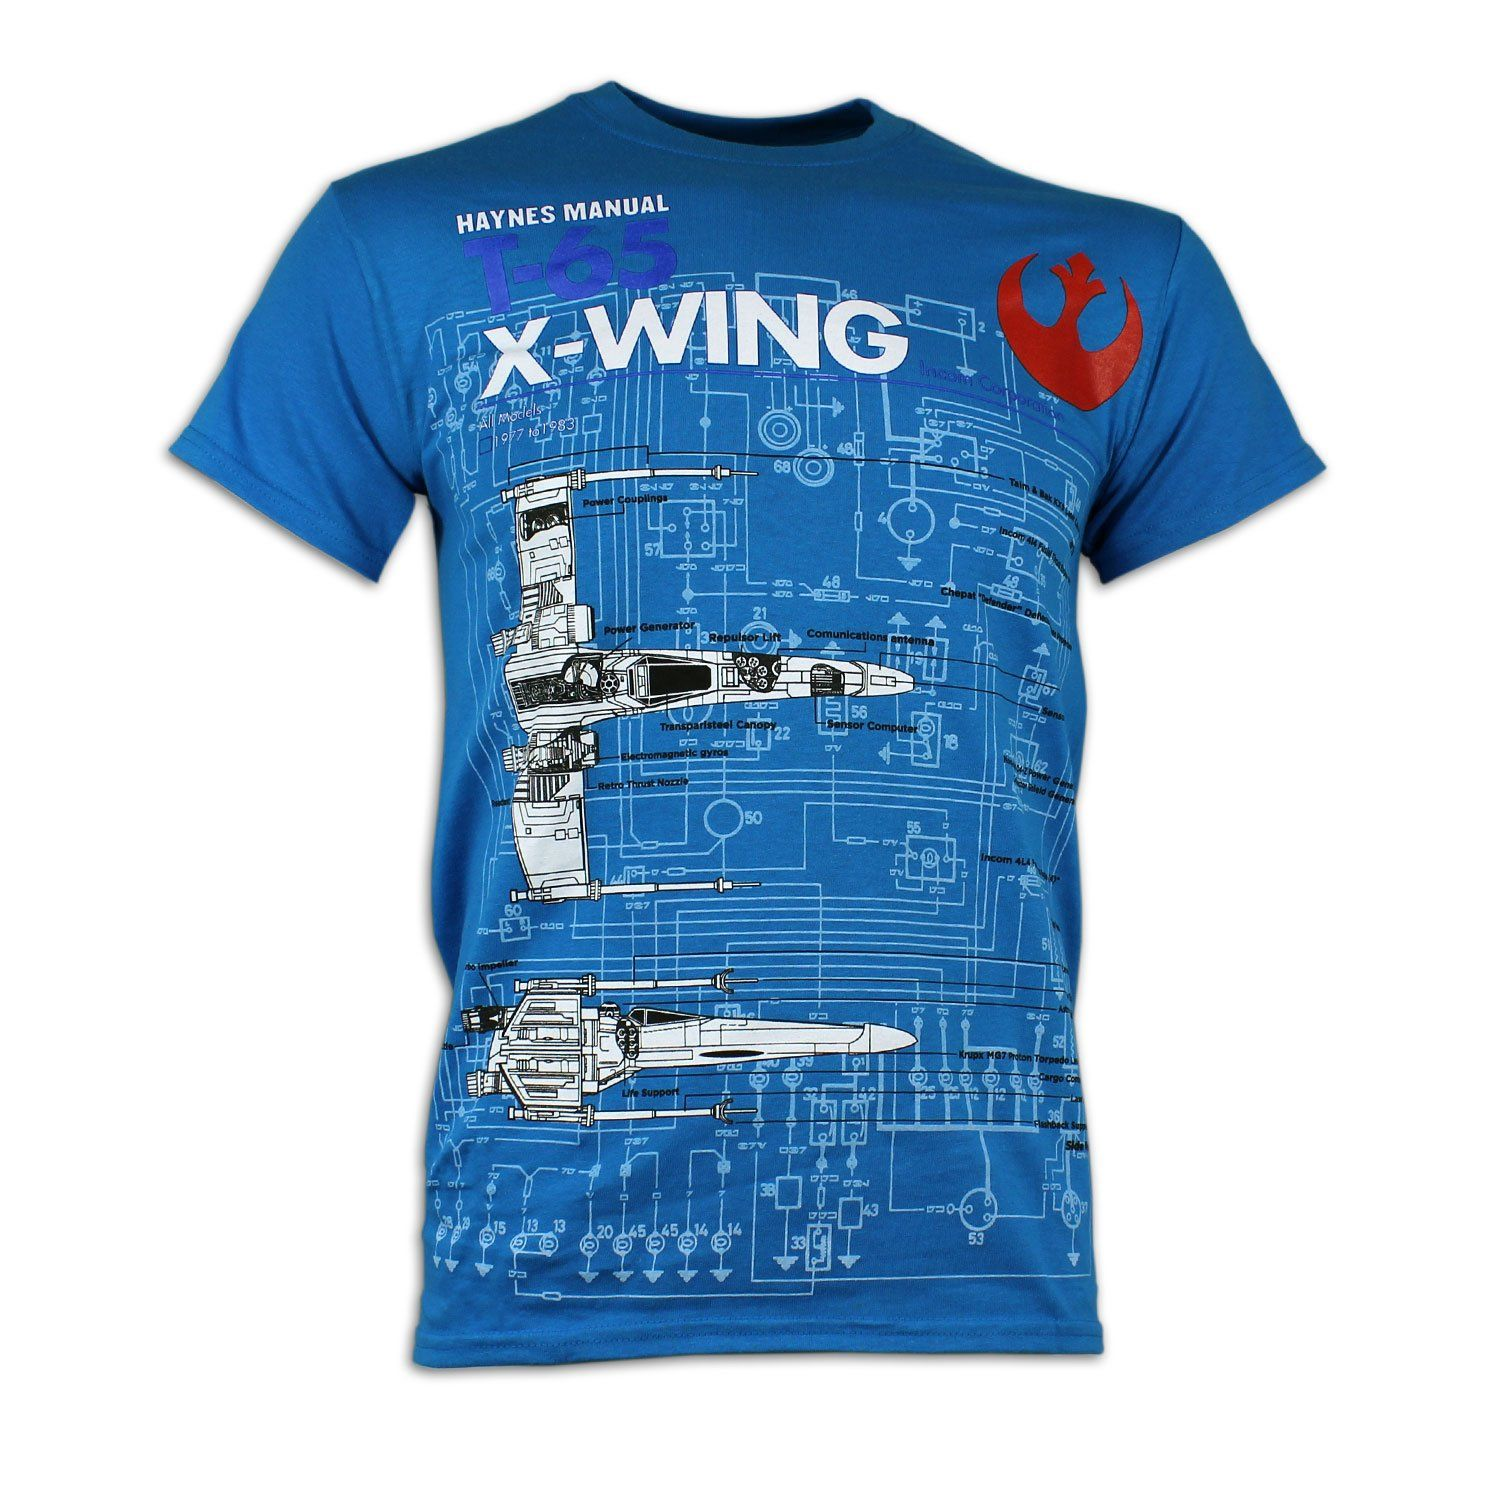 Mens VII X-Wing Fighter Maintenance Manual Short Sleeve T-Shirt Star Wars Sale 2018 Newest BVJcG3njoi